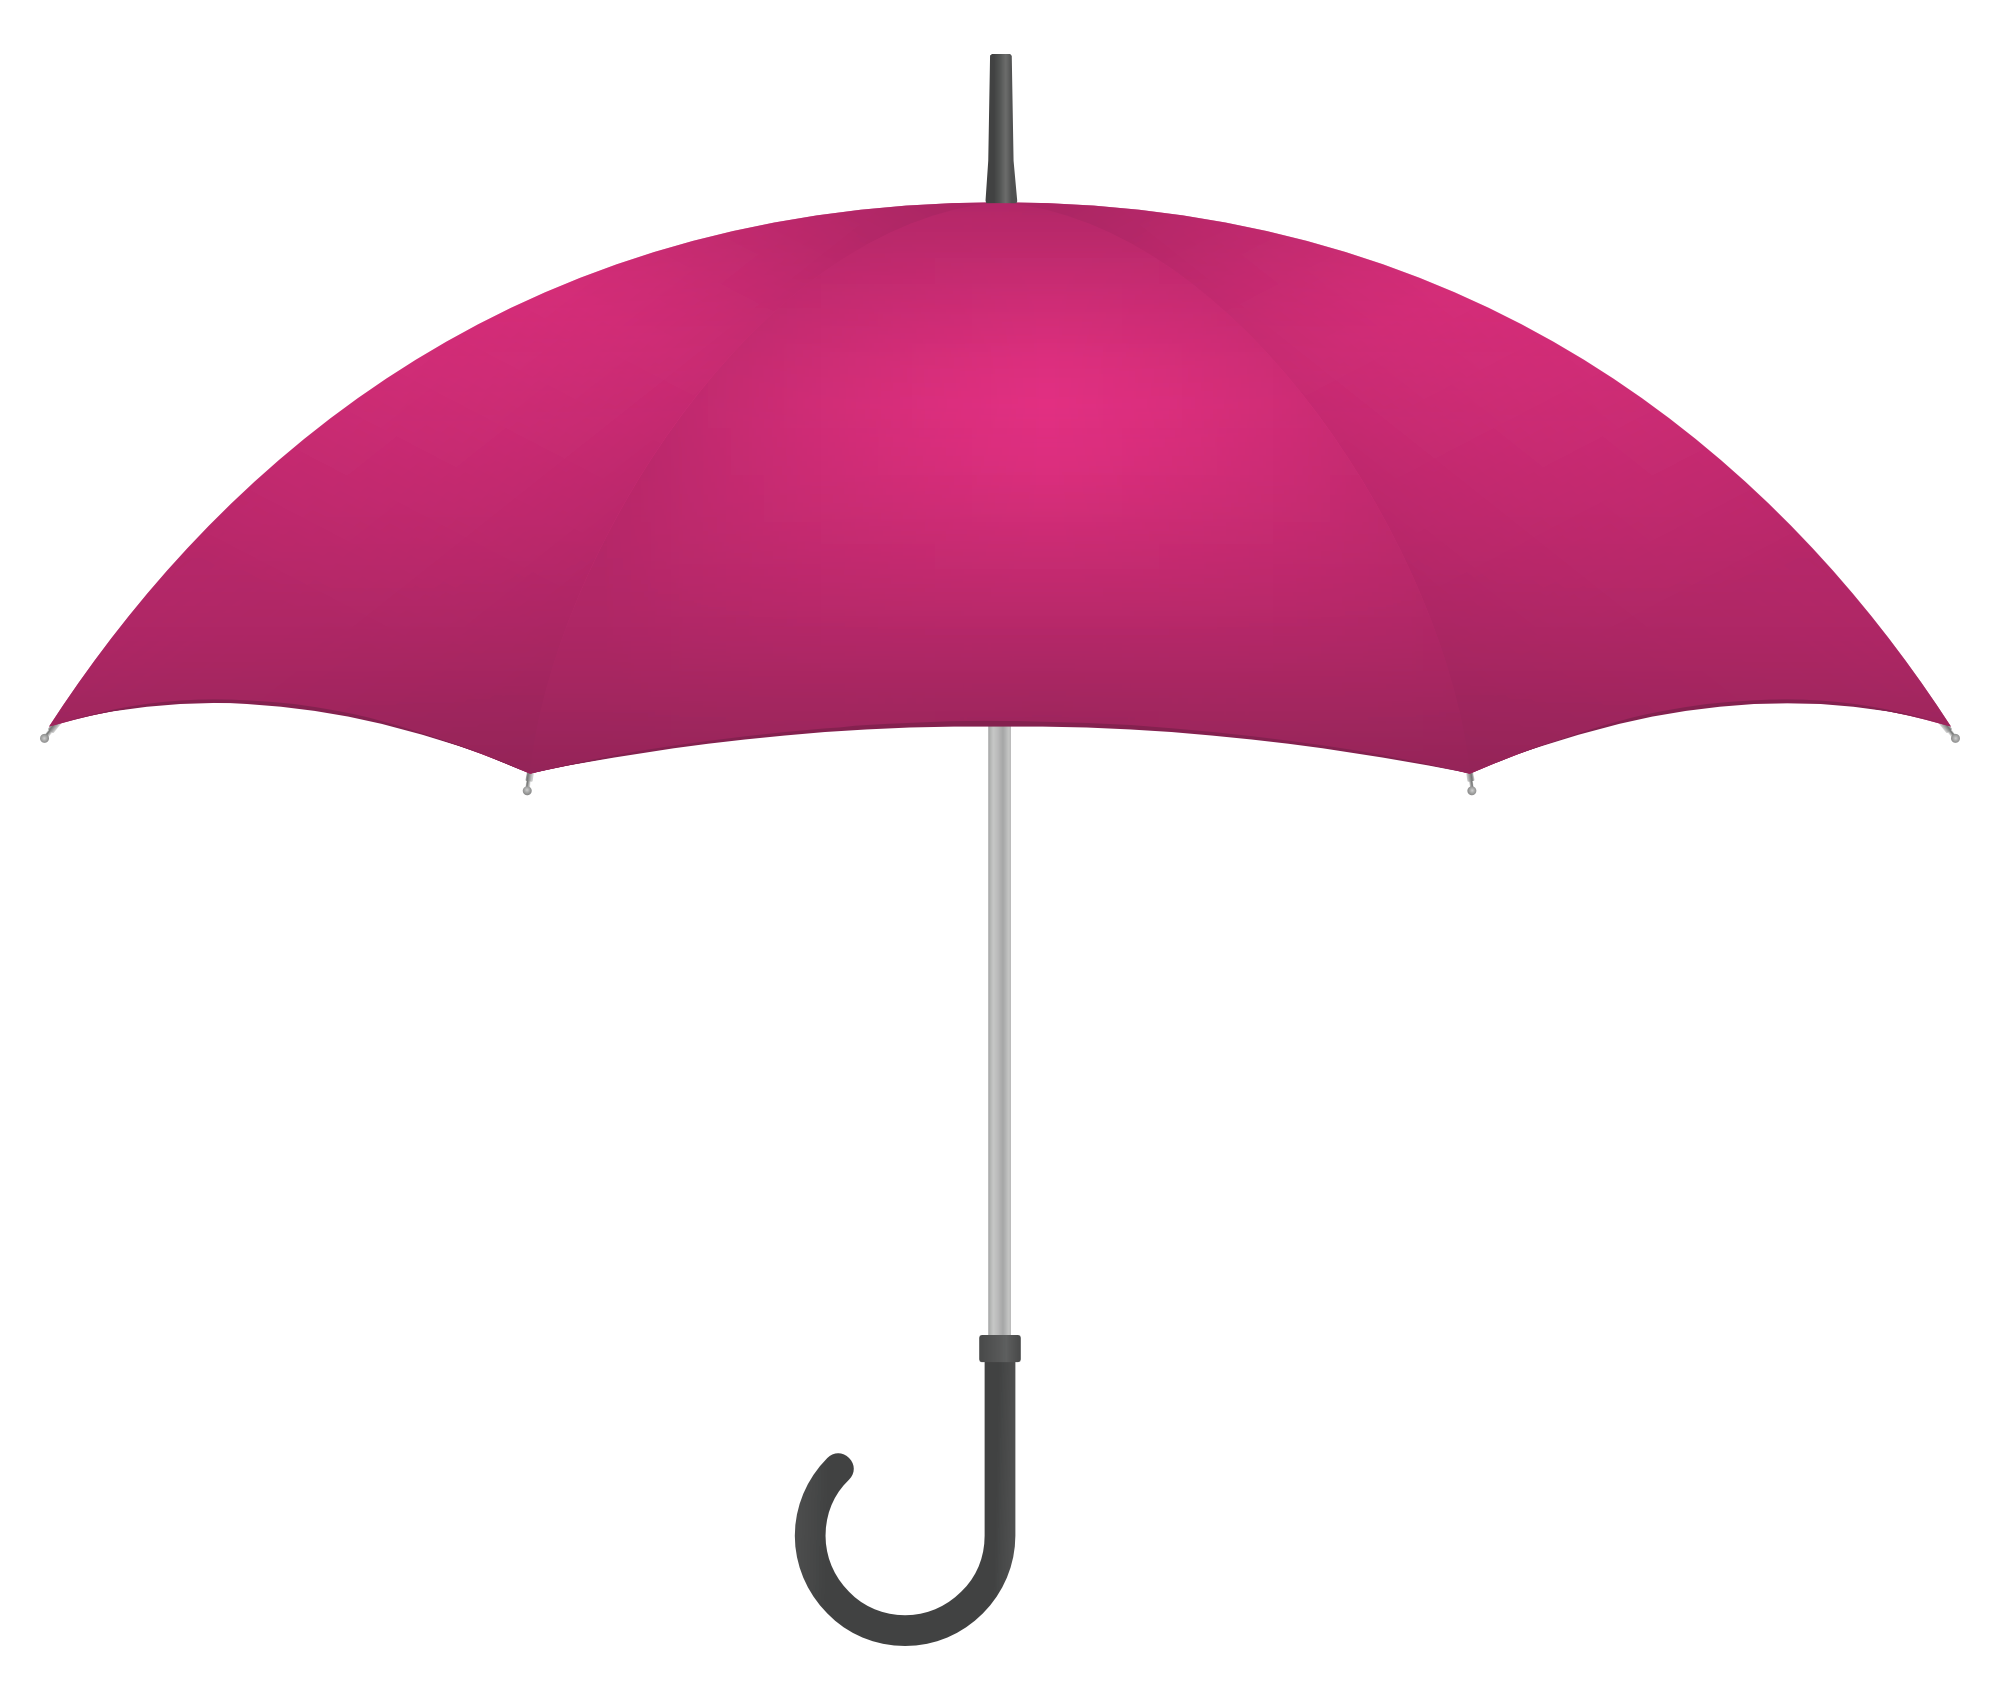 Pink Umbrella HD Image 19518